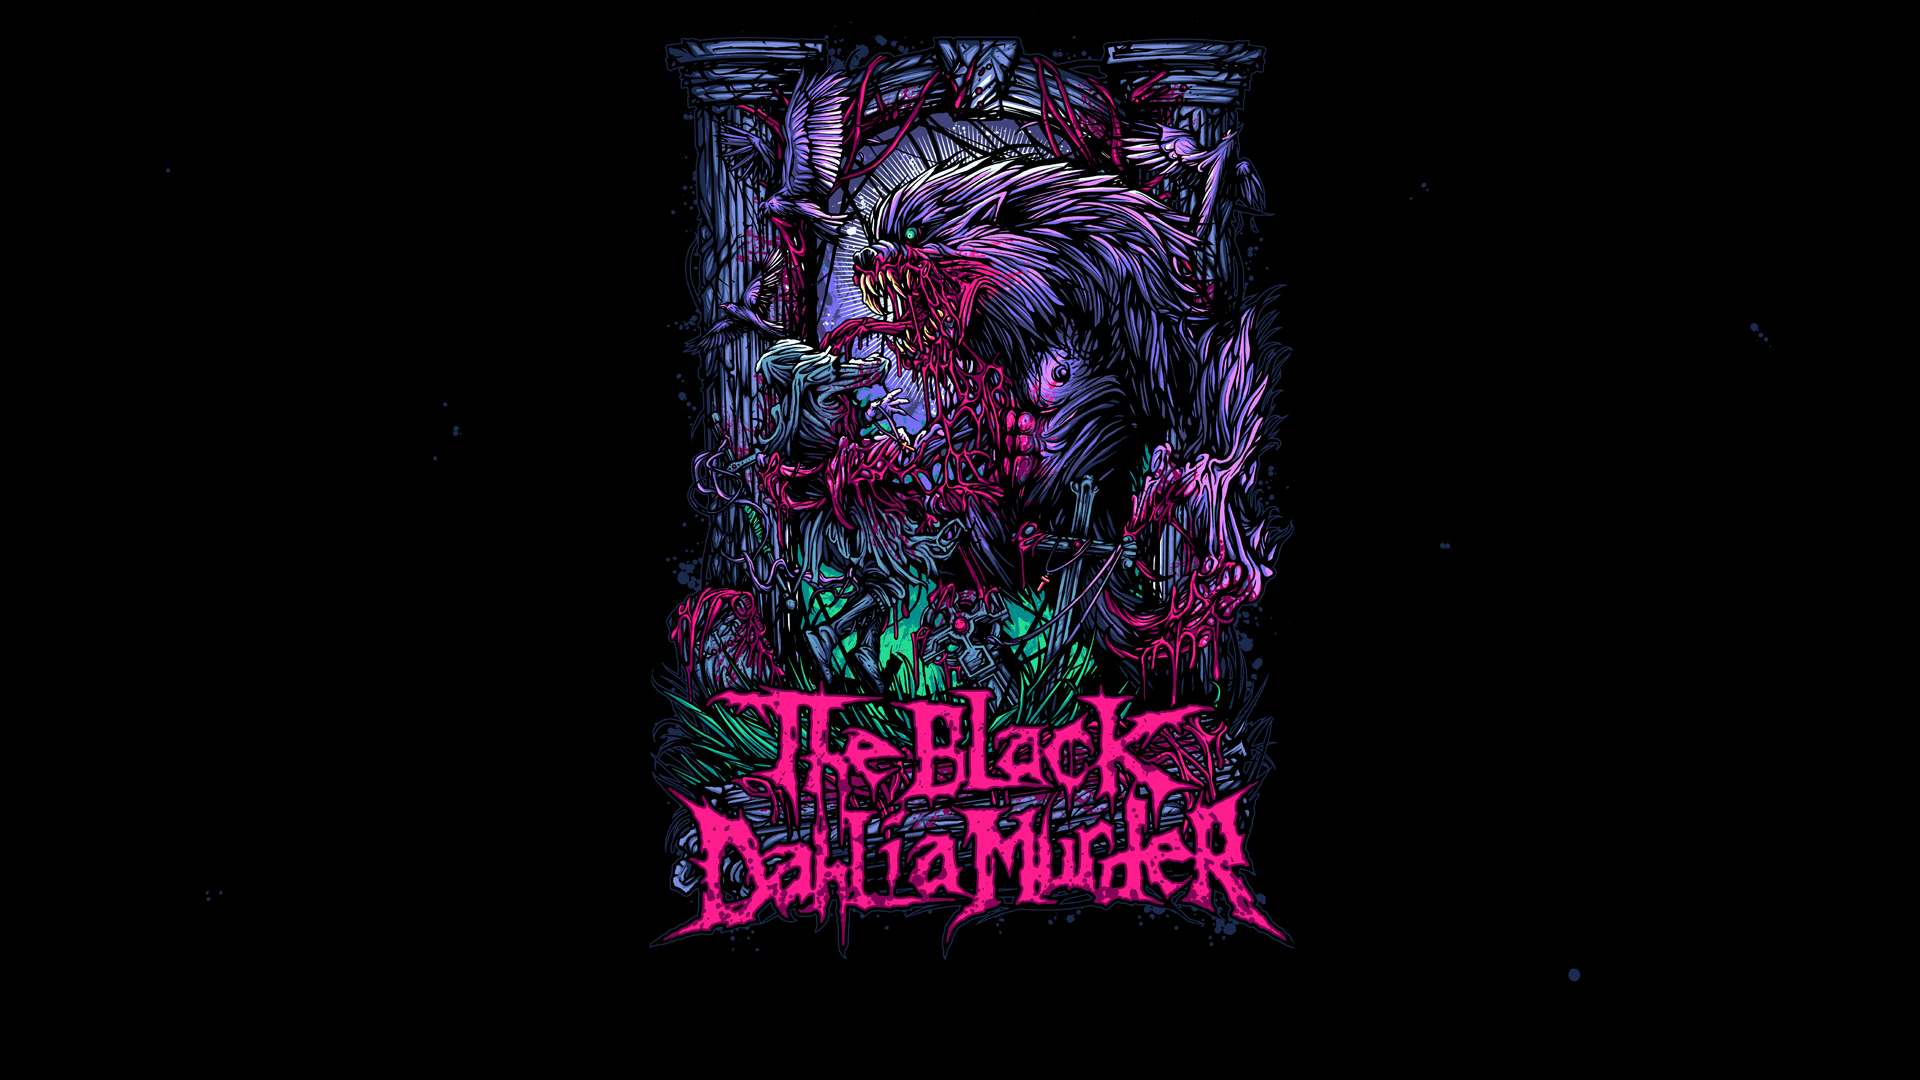 Music The Black Dahlia Murder Digital Art Band Free Wallpaper